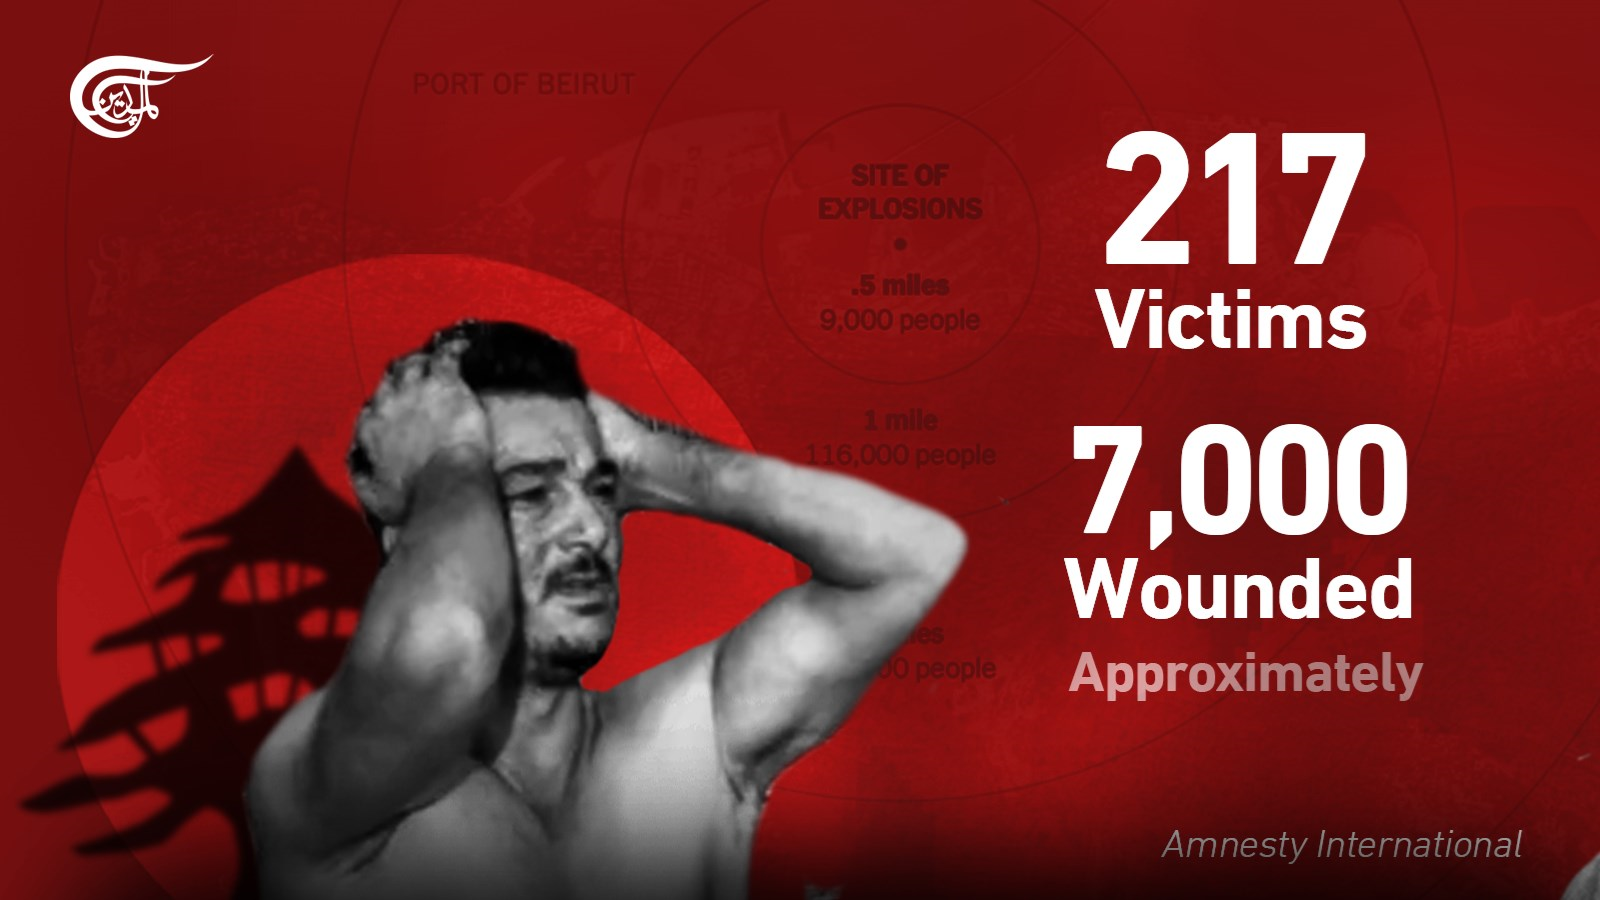 Around 217 people martyred